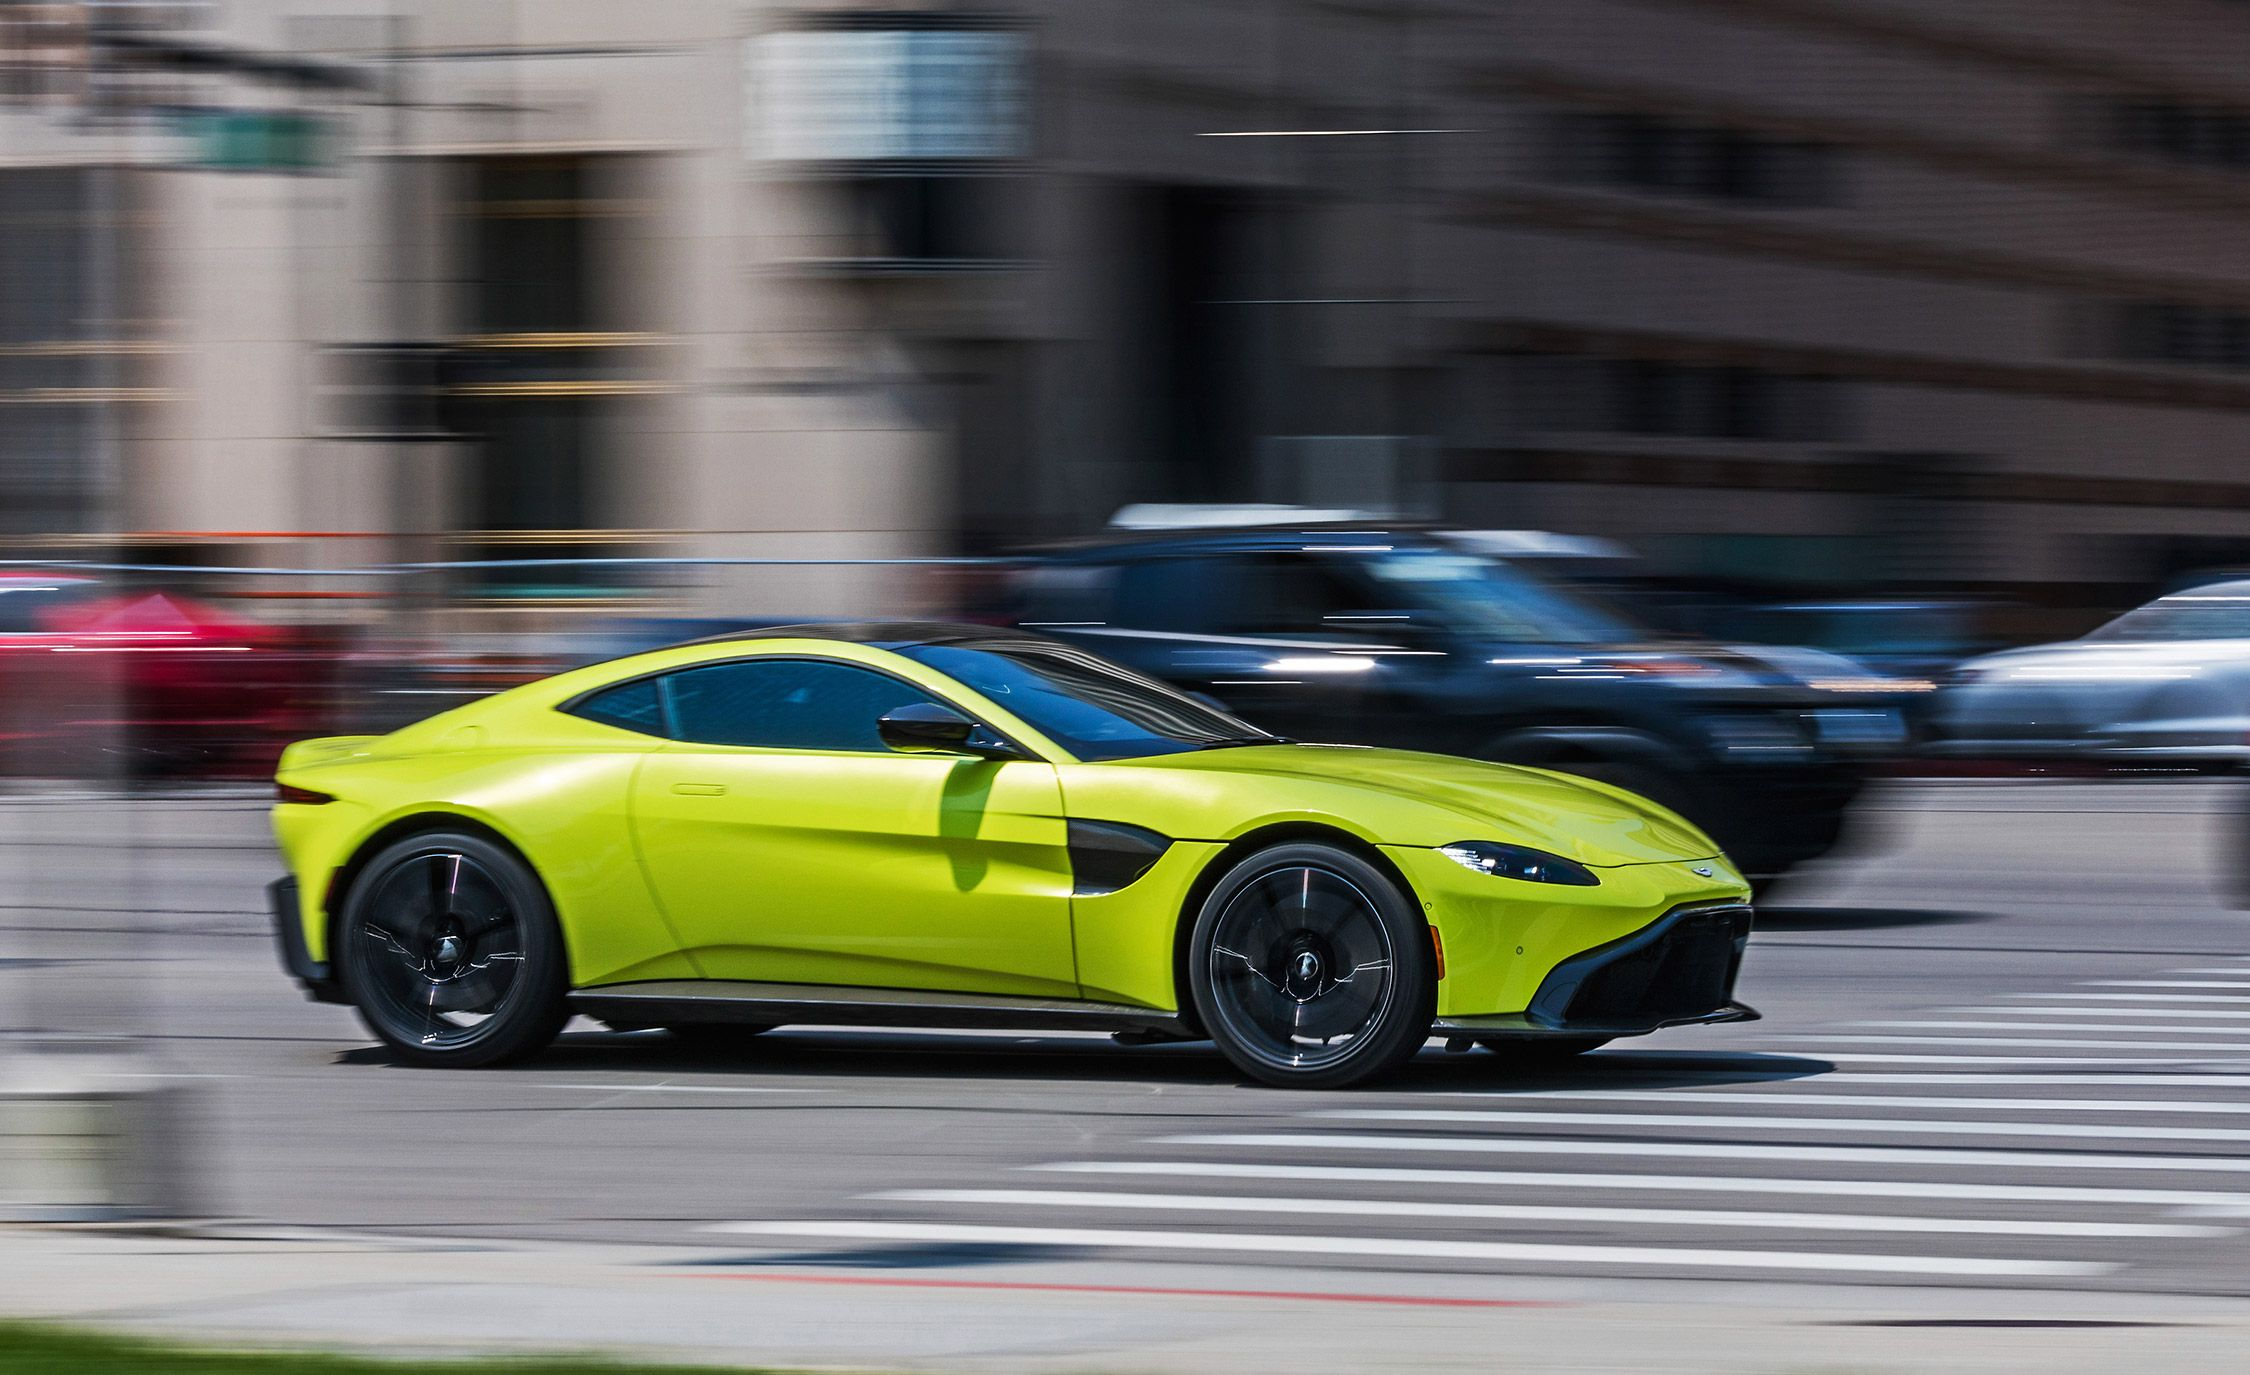 13 Aston Martin Vantage Is a 13-HP V-13 Sports Car | aston martin reliability